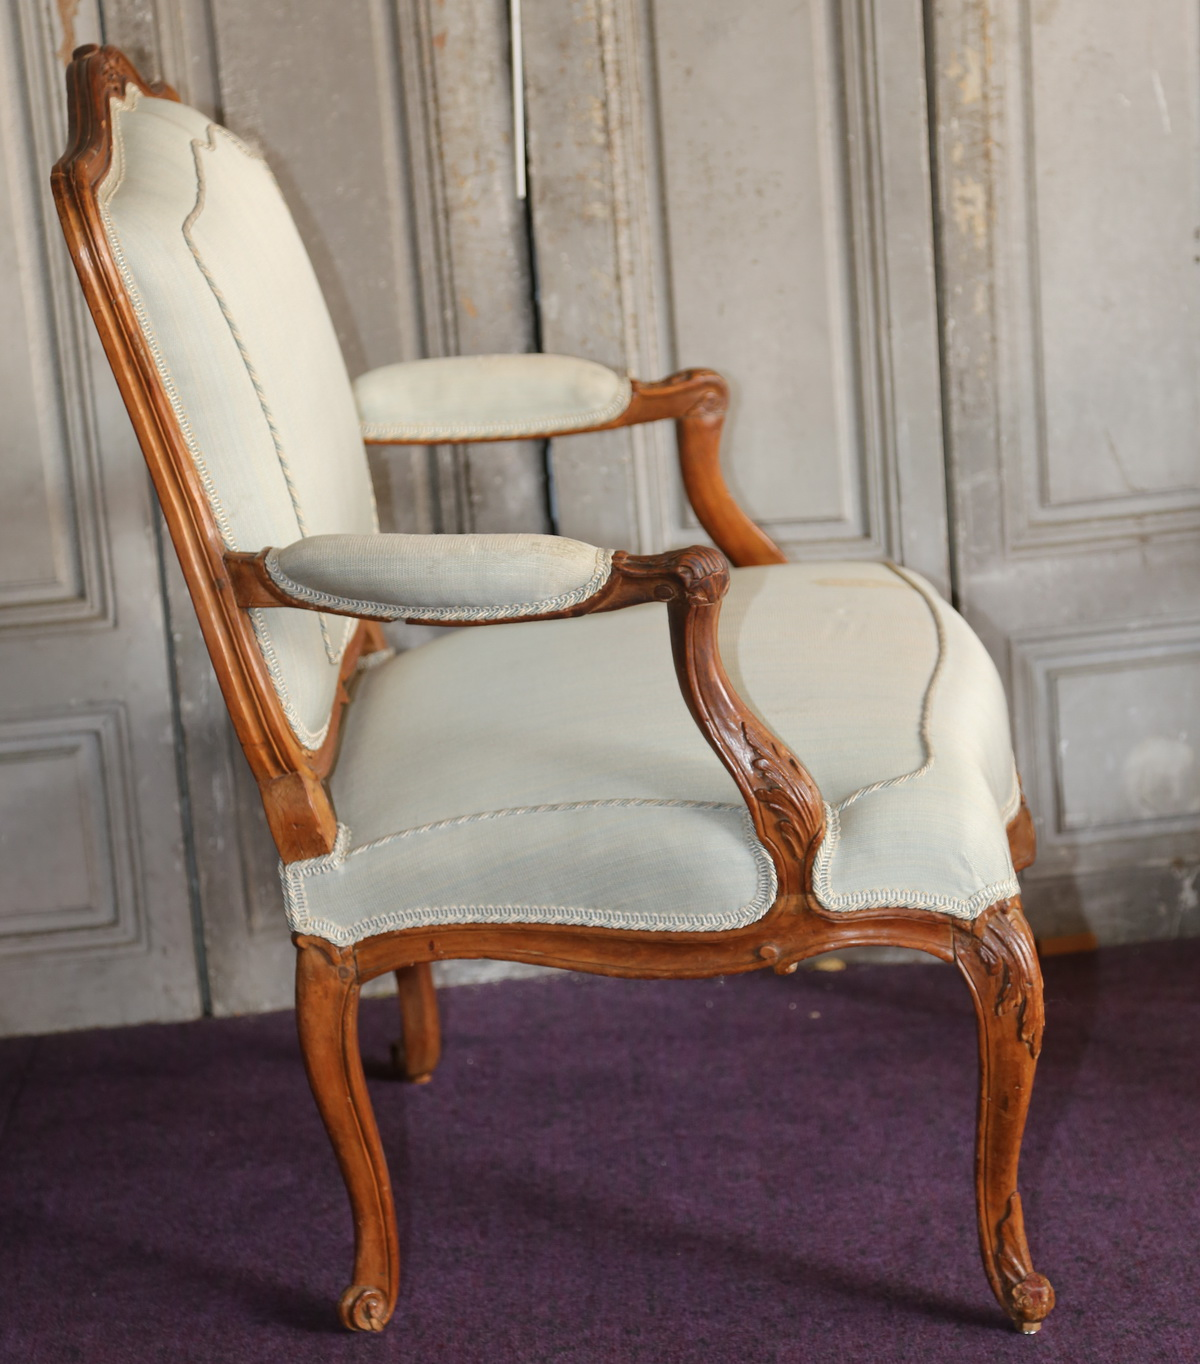 Pair of armchairs 18th